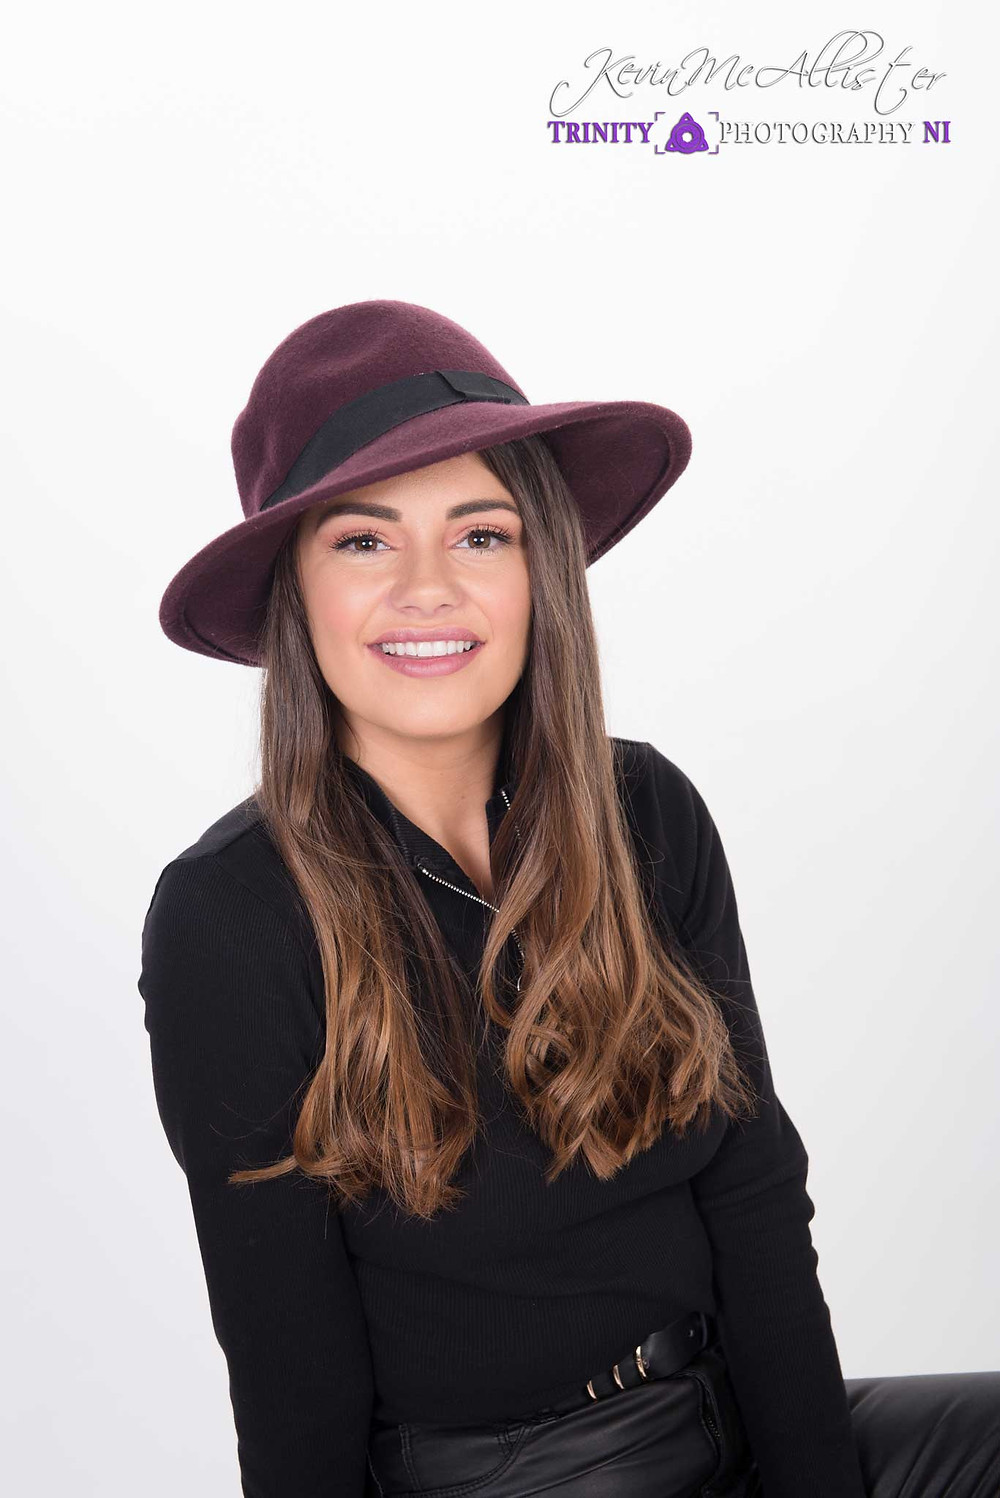 model in a burgundy hat with black outfit